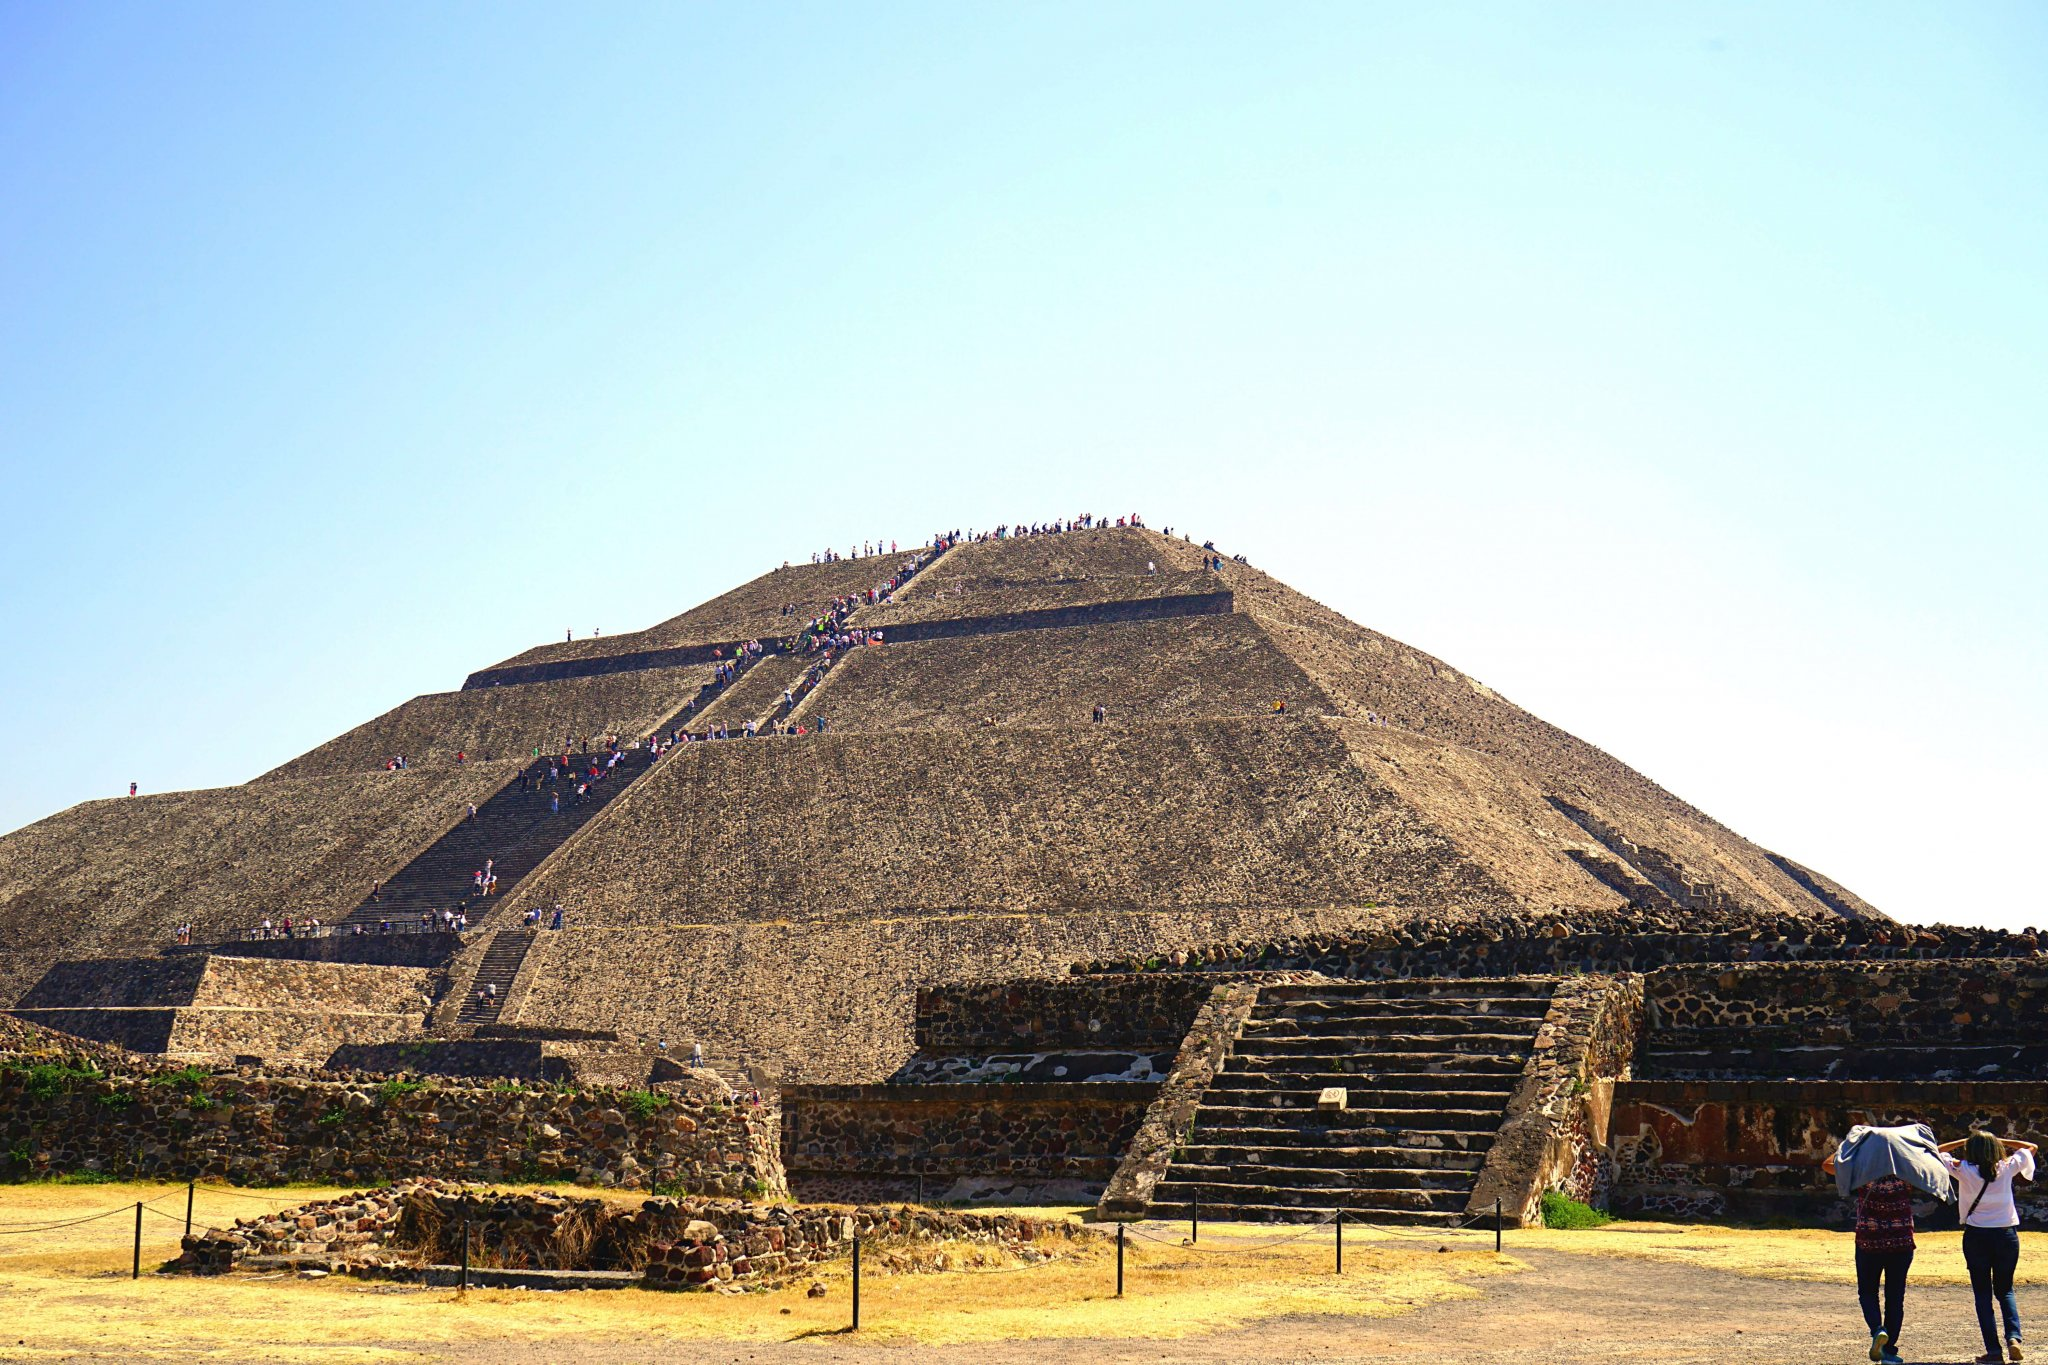 Teotihuacan Pyramids - Pyramid of the Sun